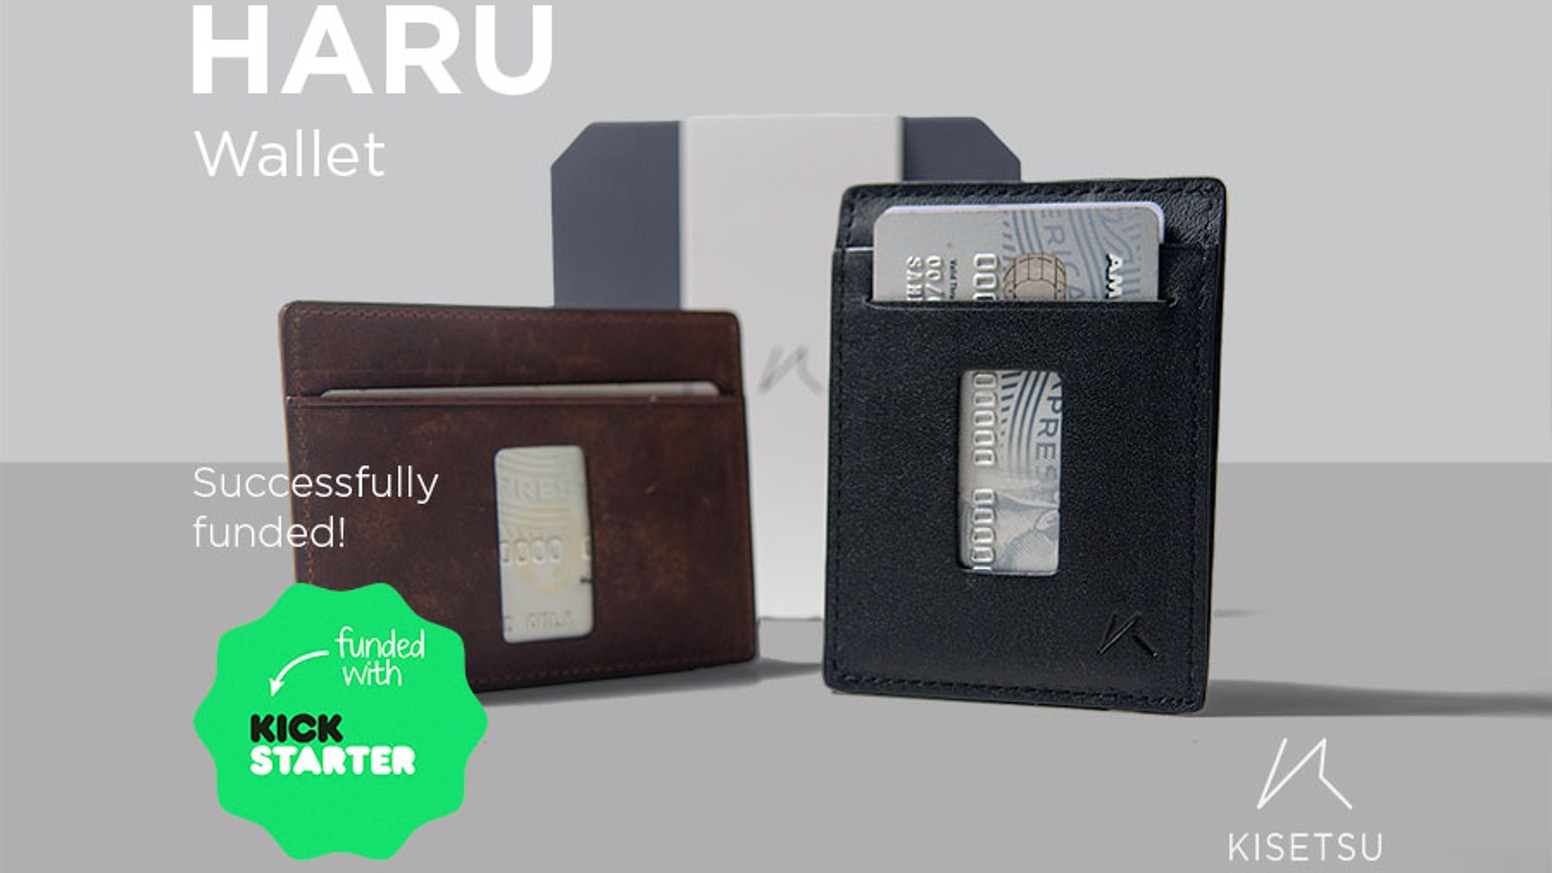 Haru just got an upgrade. We've listened to your suggestions and applied them. Carrying and using your cards just became simpler.